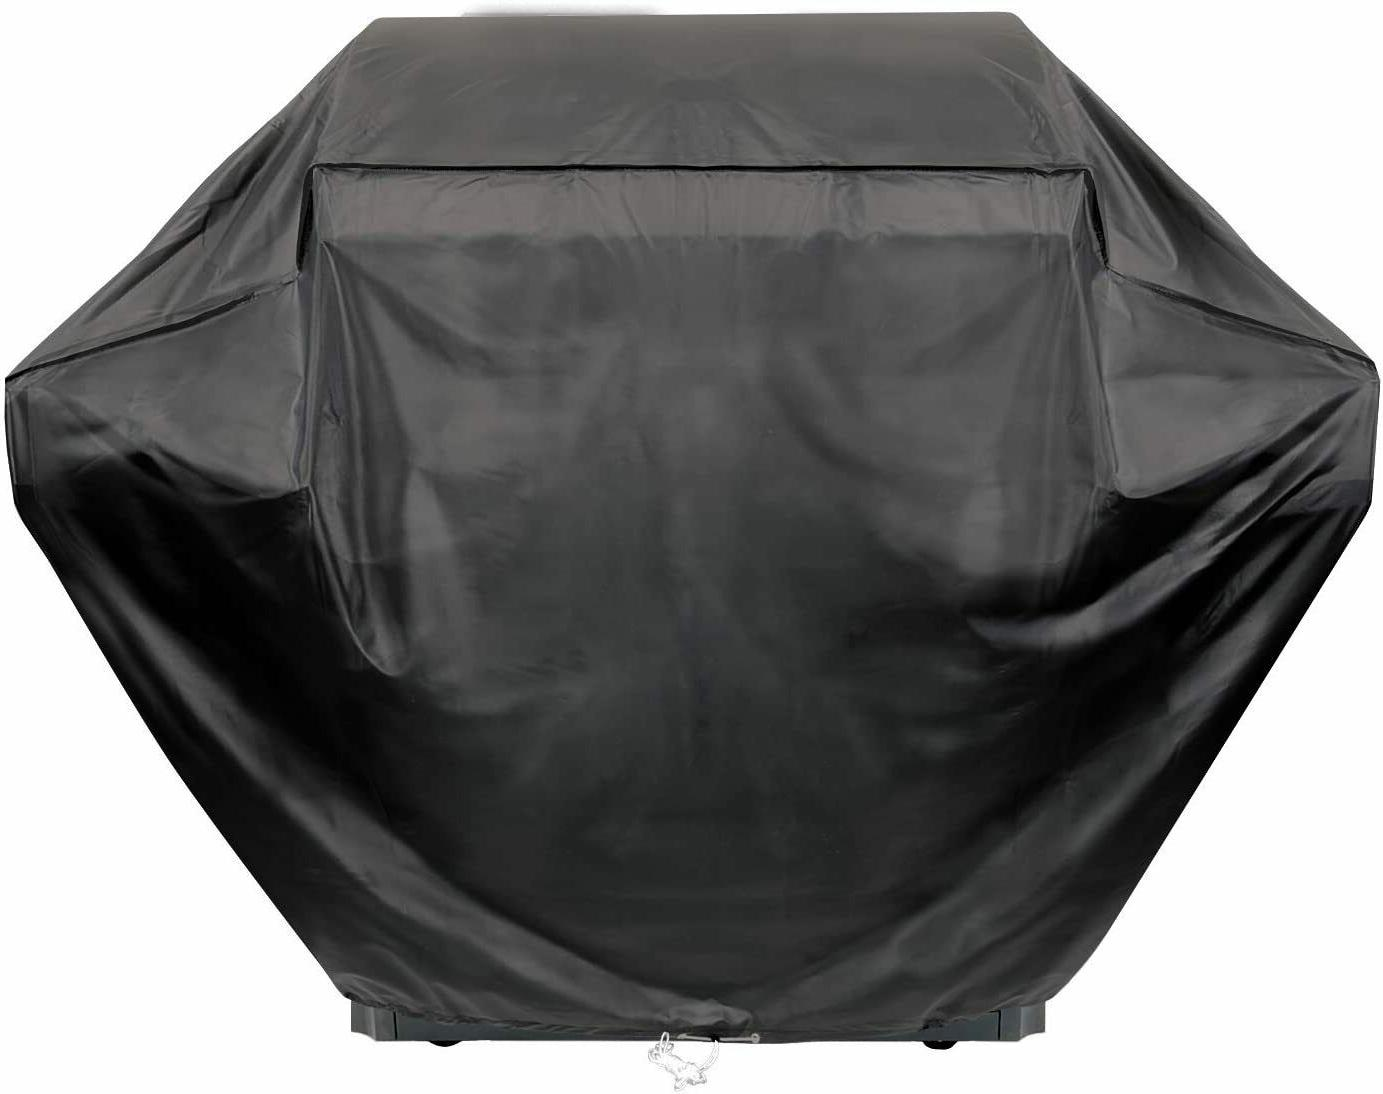 Grill Cover 55 Inch Heavy Duty Vinyl Weather Proof with Draw